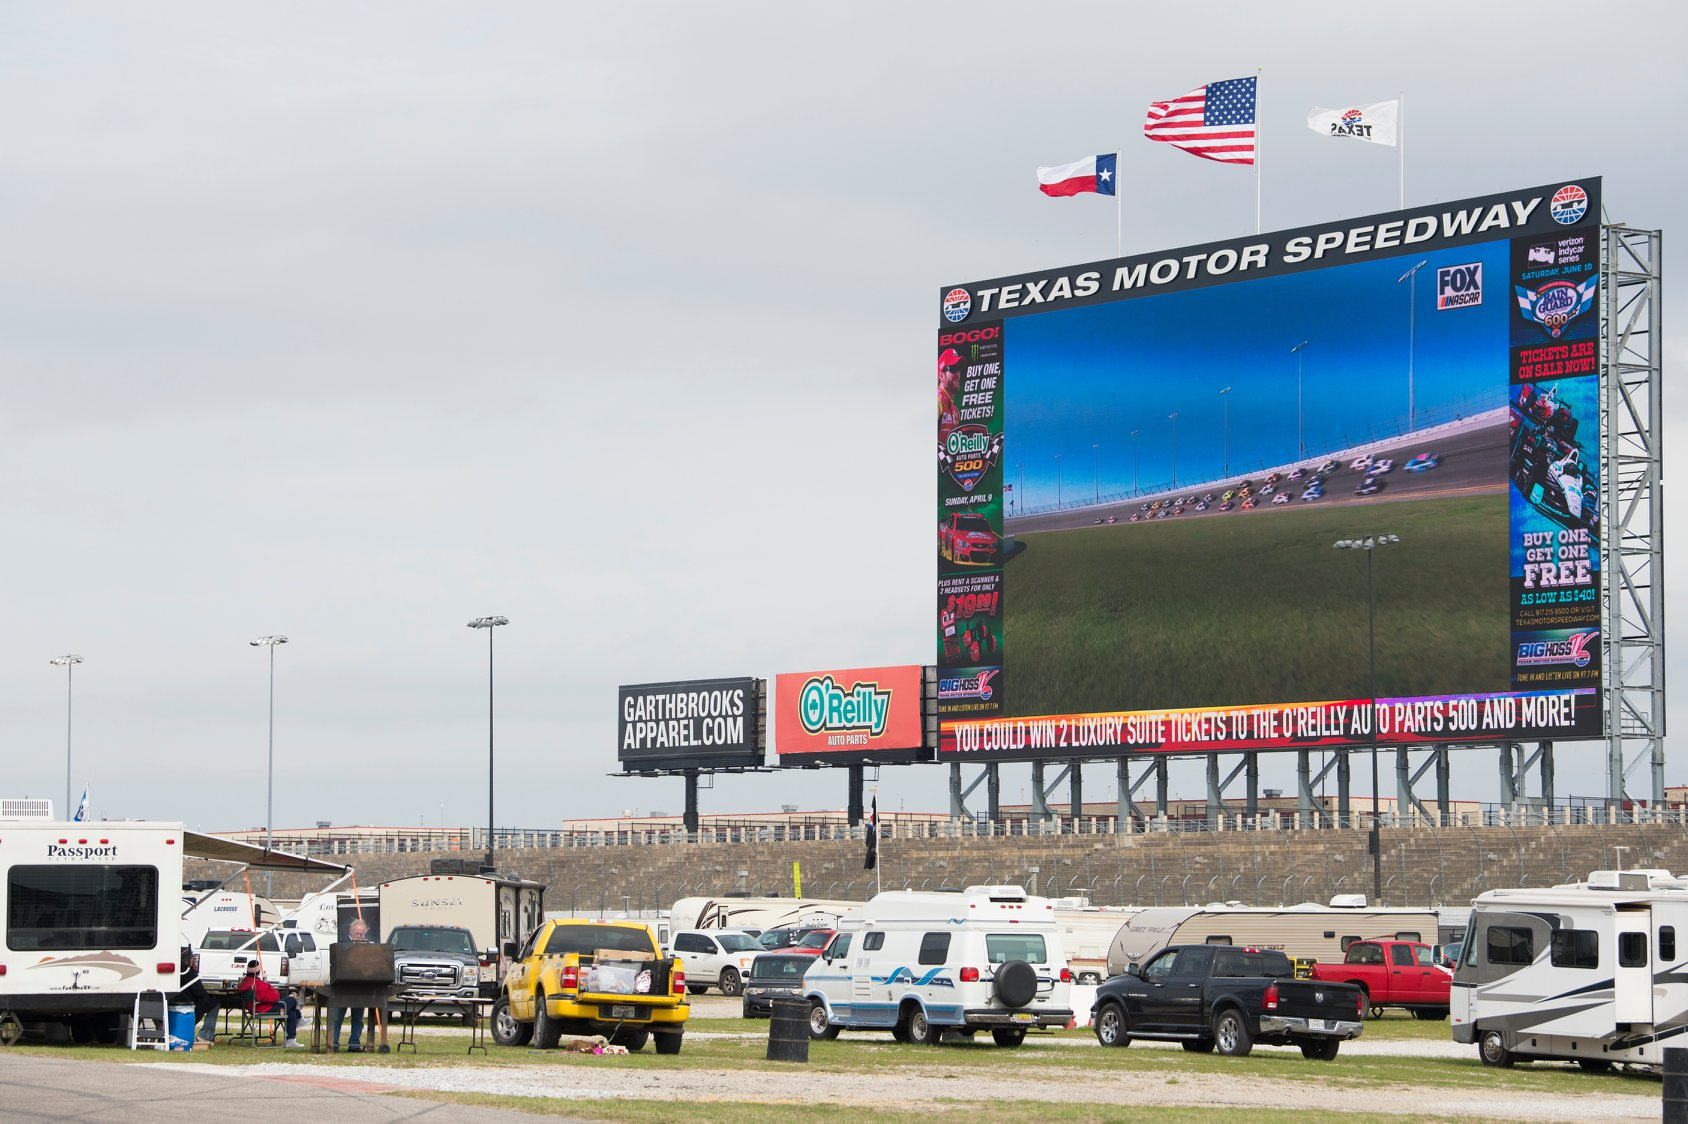 Photo: Texas Motor Speedway/Facebook